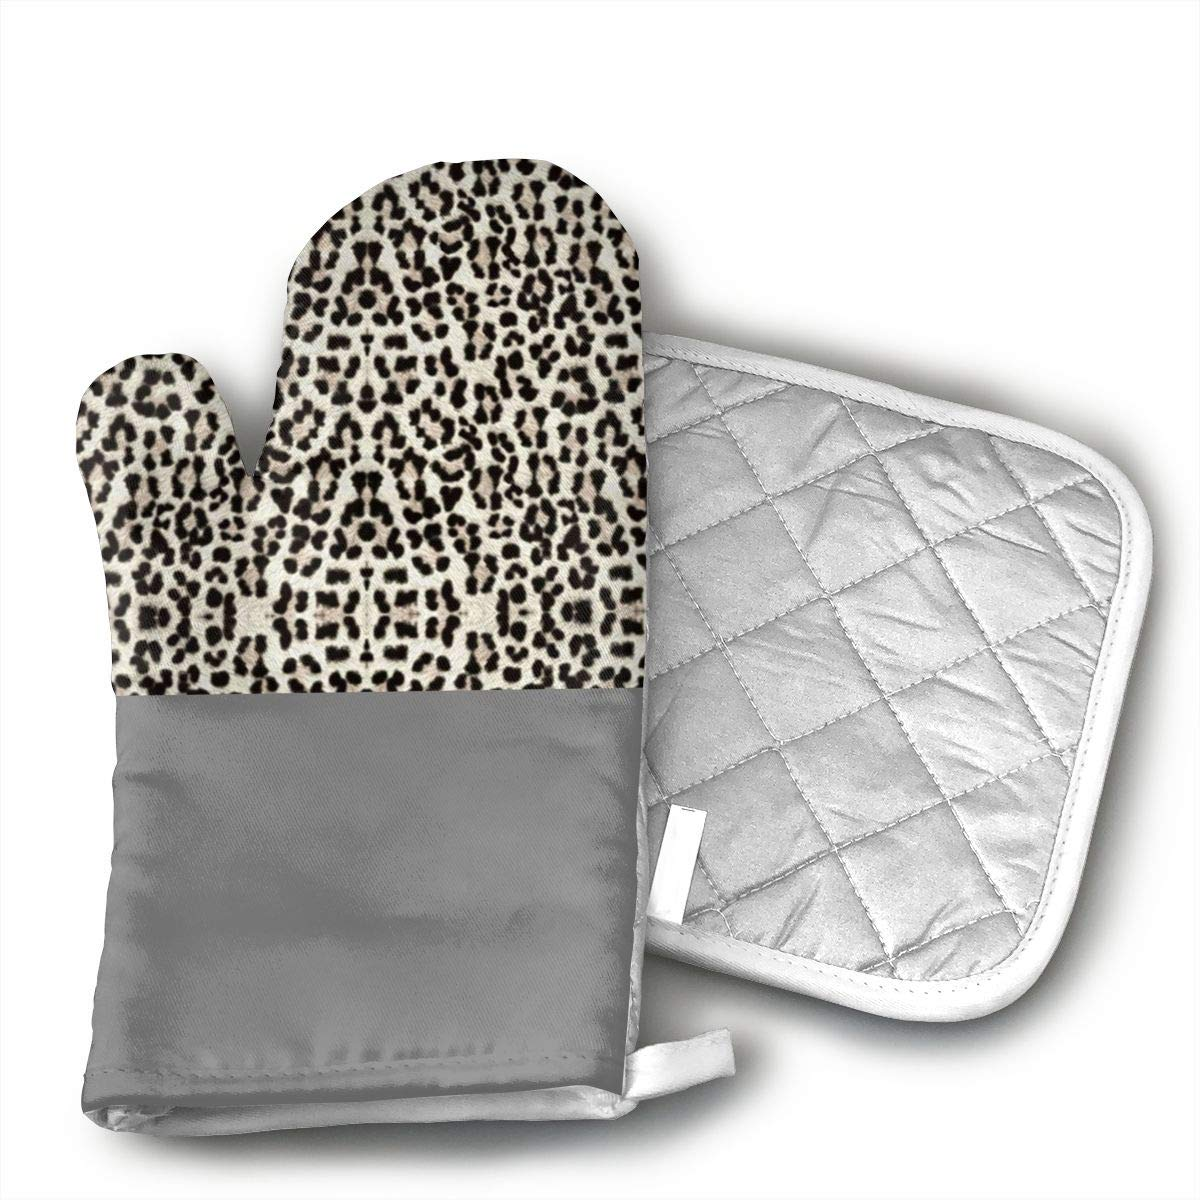 FSDGHVFIJTT Snow Leopard Bigger and Better Resistant Oven Gloves to Protect Hands and Surfaces with Non-Slip Grip, Hanging Loop-Ideal for Handling Hot Cookware Items